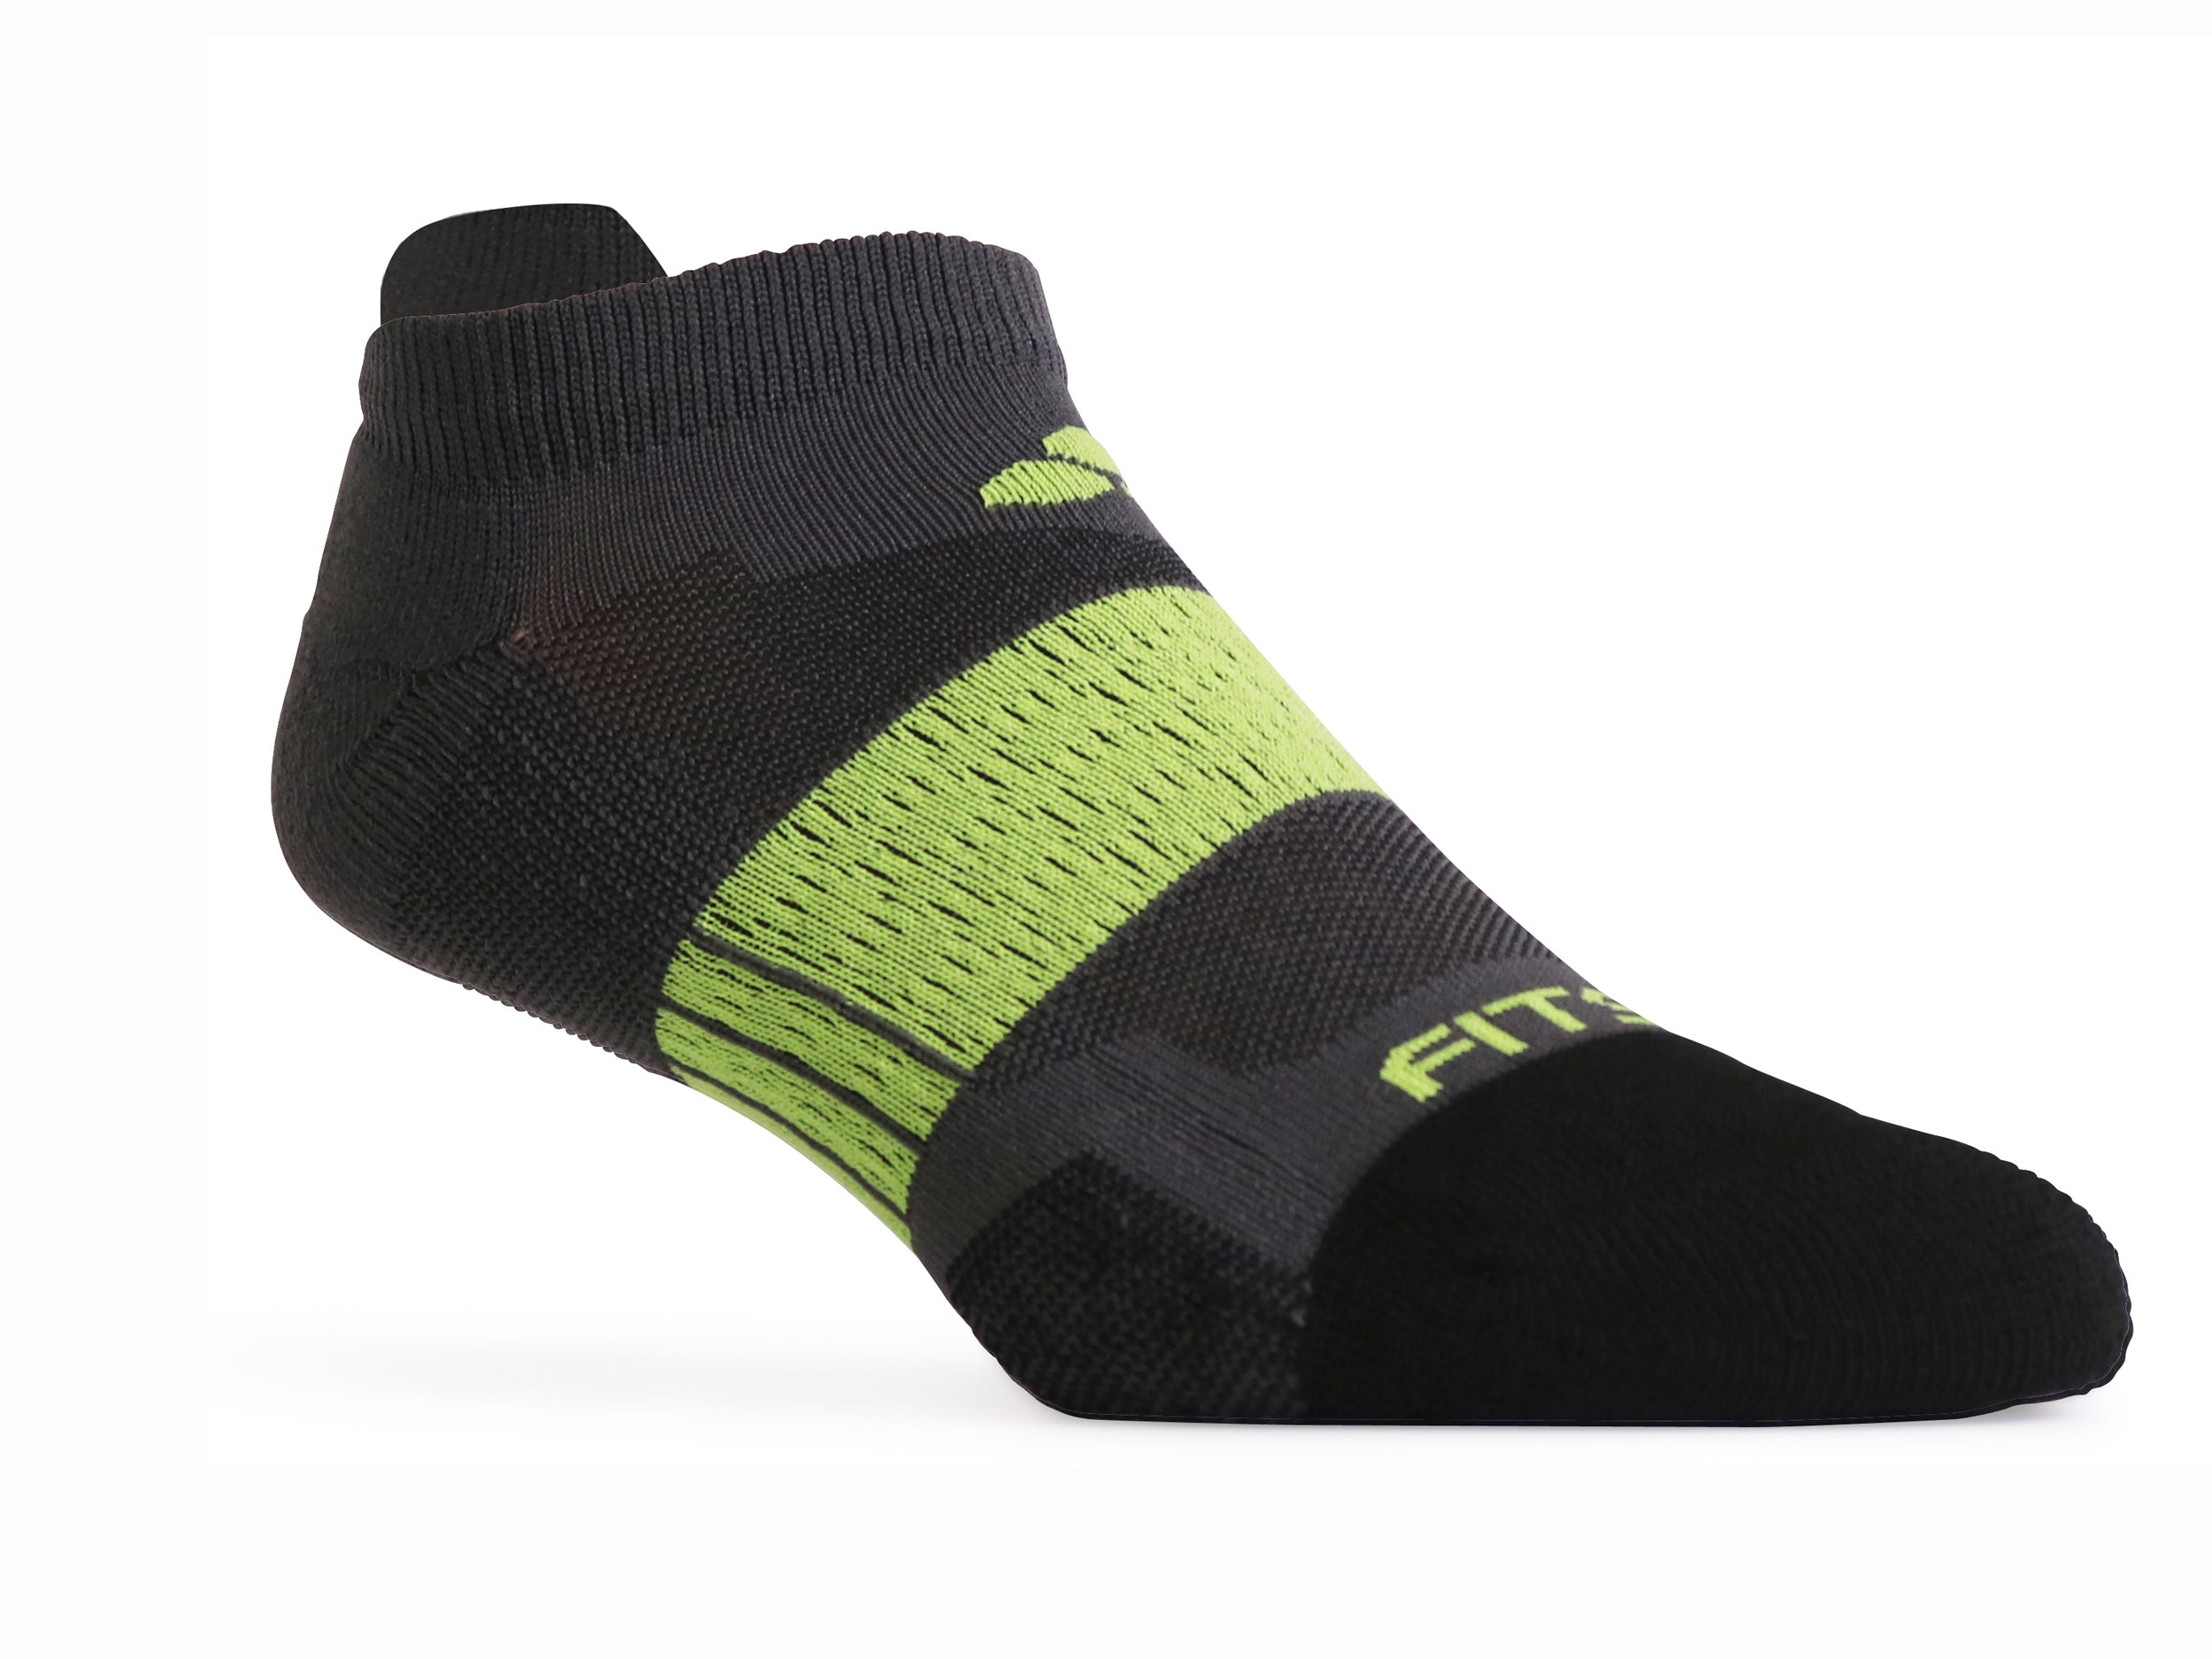 NP7 Mid-weight Tab (Gray & Lime) - Fitsok.com